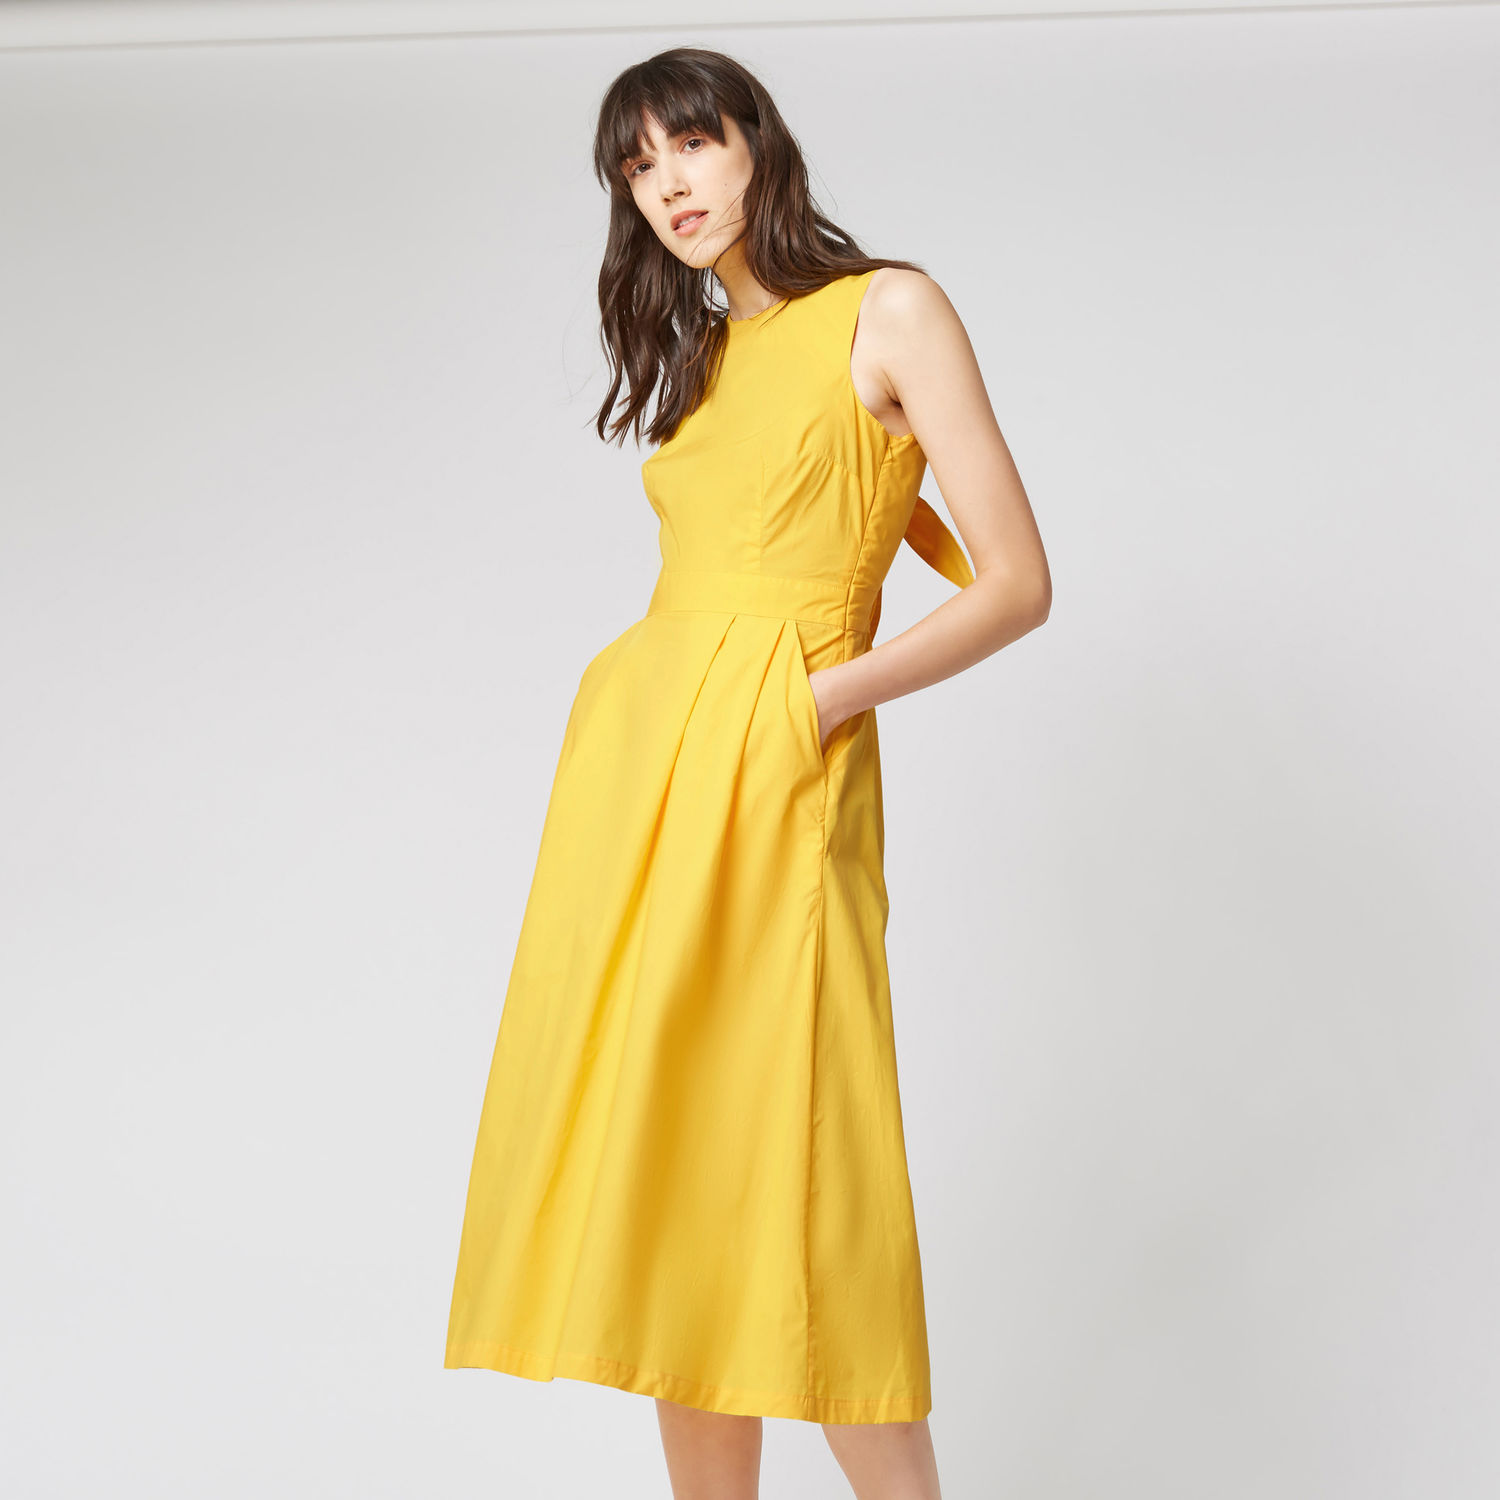 Yellow Dress    Yellow is one of the most on-trend colours of the season. This dress has a neckline I would never normally go for as I think its really unflattering on most people. It usually makes their arms look bigger than they actually are and if you have a big bust it's double trouble. So why do I want it? I saw these fab yellow dress in Maje ( click here ) and I tired it on with the perfect denim jacket and I just loved the look -but the price was too much, so this is an affordable alternative! A client recently bought both the Maje yellow dress and the Maje denim jacket and it was sooo nice. I had major client wardrobe envy.  Click here  for link.